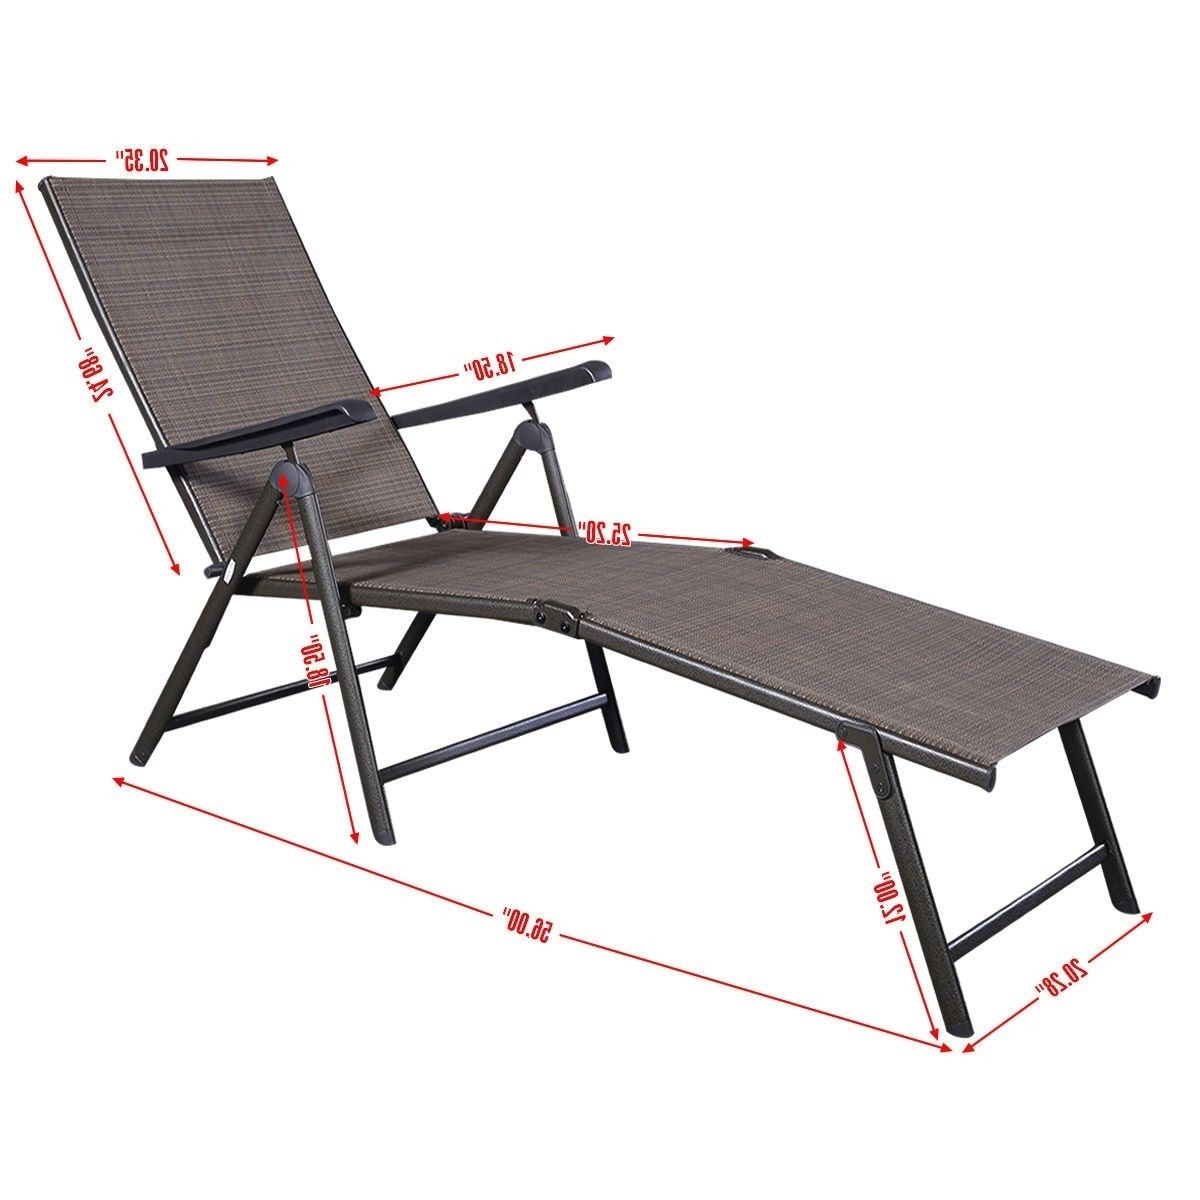 Newest Patio Furniture Textilene Adjustable Pool Chaise Lounge Chair Pertaining To Adjustable Pool Chaise Lounge Chair Recliners (View 12 of 15)